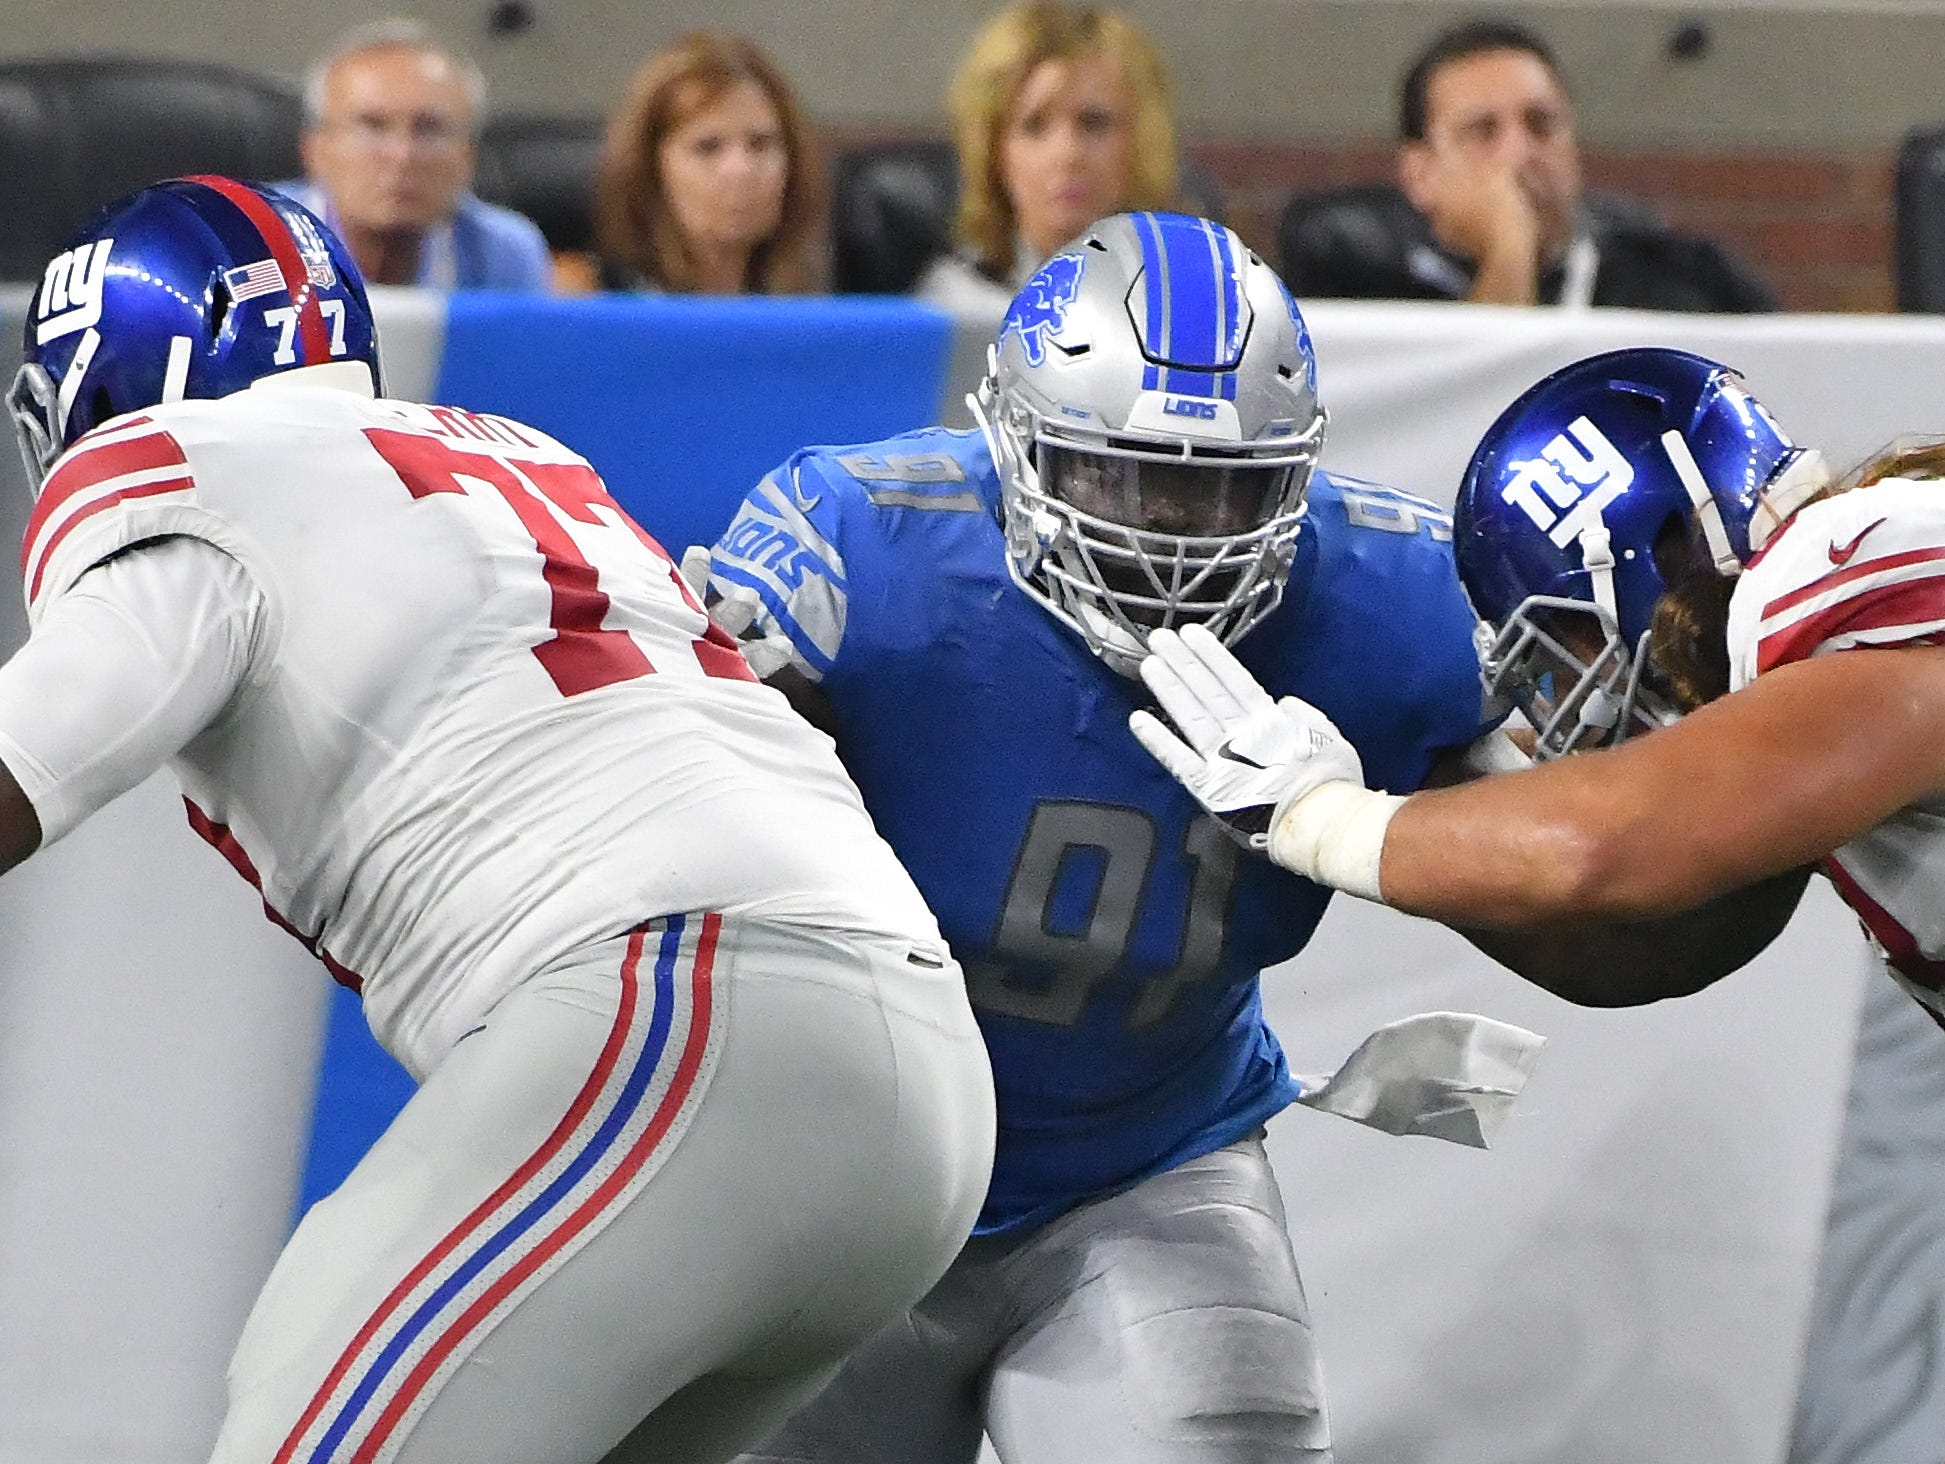 DT A'Shawn Robinson: A healthy scratch to start the season, Robinson returned to the lineup and started playing to the potential that made him a second-round pick three years ago. A dominant run defender, Robinson was a natural fit for Detroit's gap control front. He didn't offer much in the pass rush, but that's not the focal point of his position within this system. Grade: A-